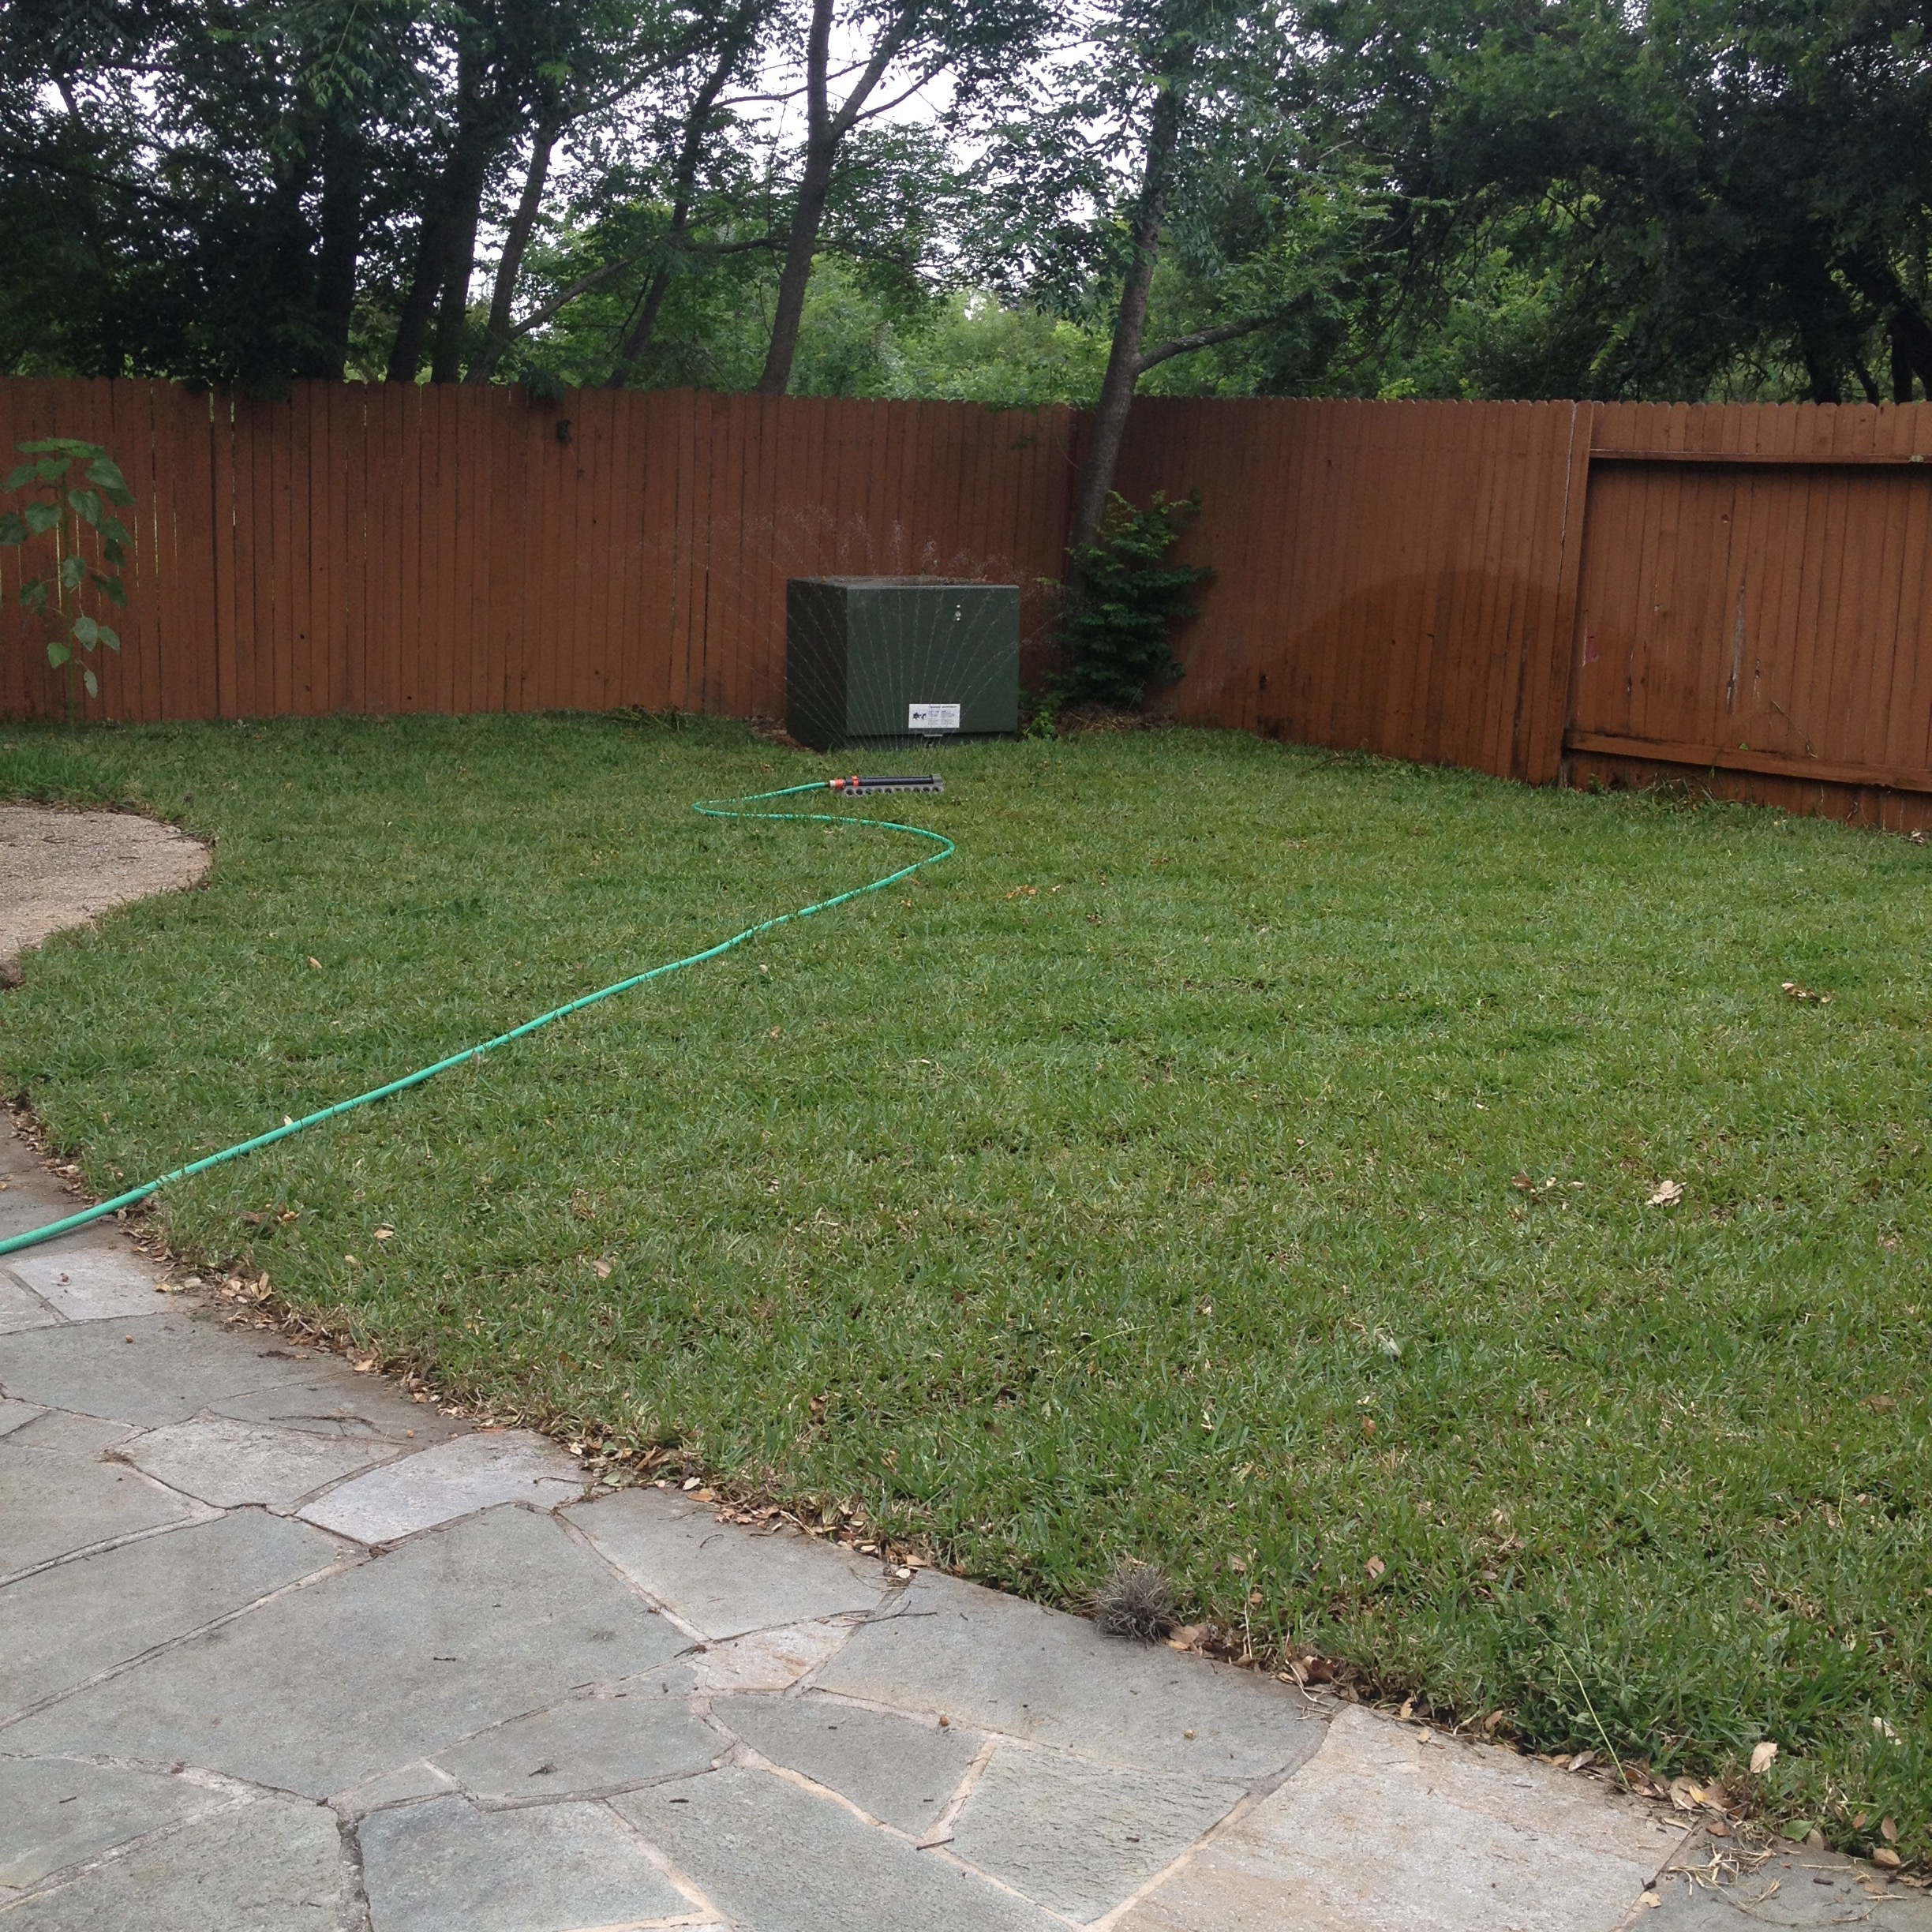 And...turf. Back to square one. Shoulda left it that way in the first place.